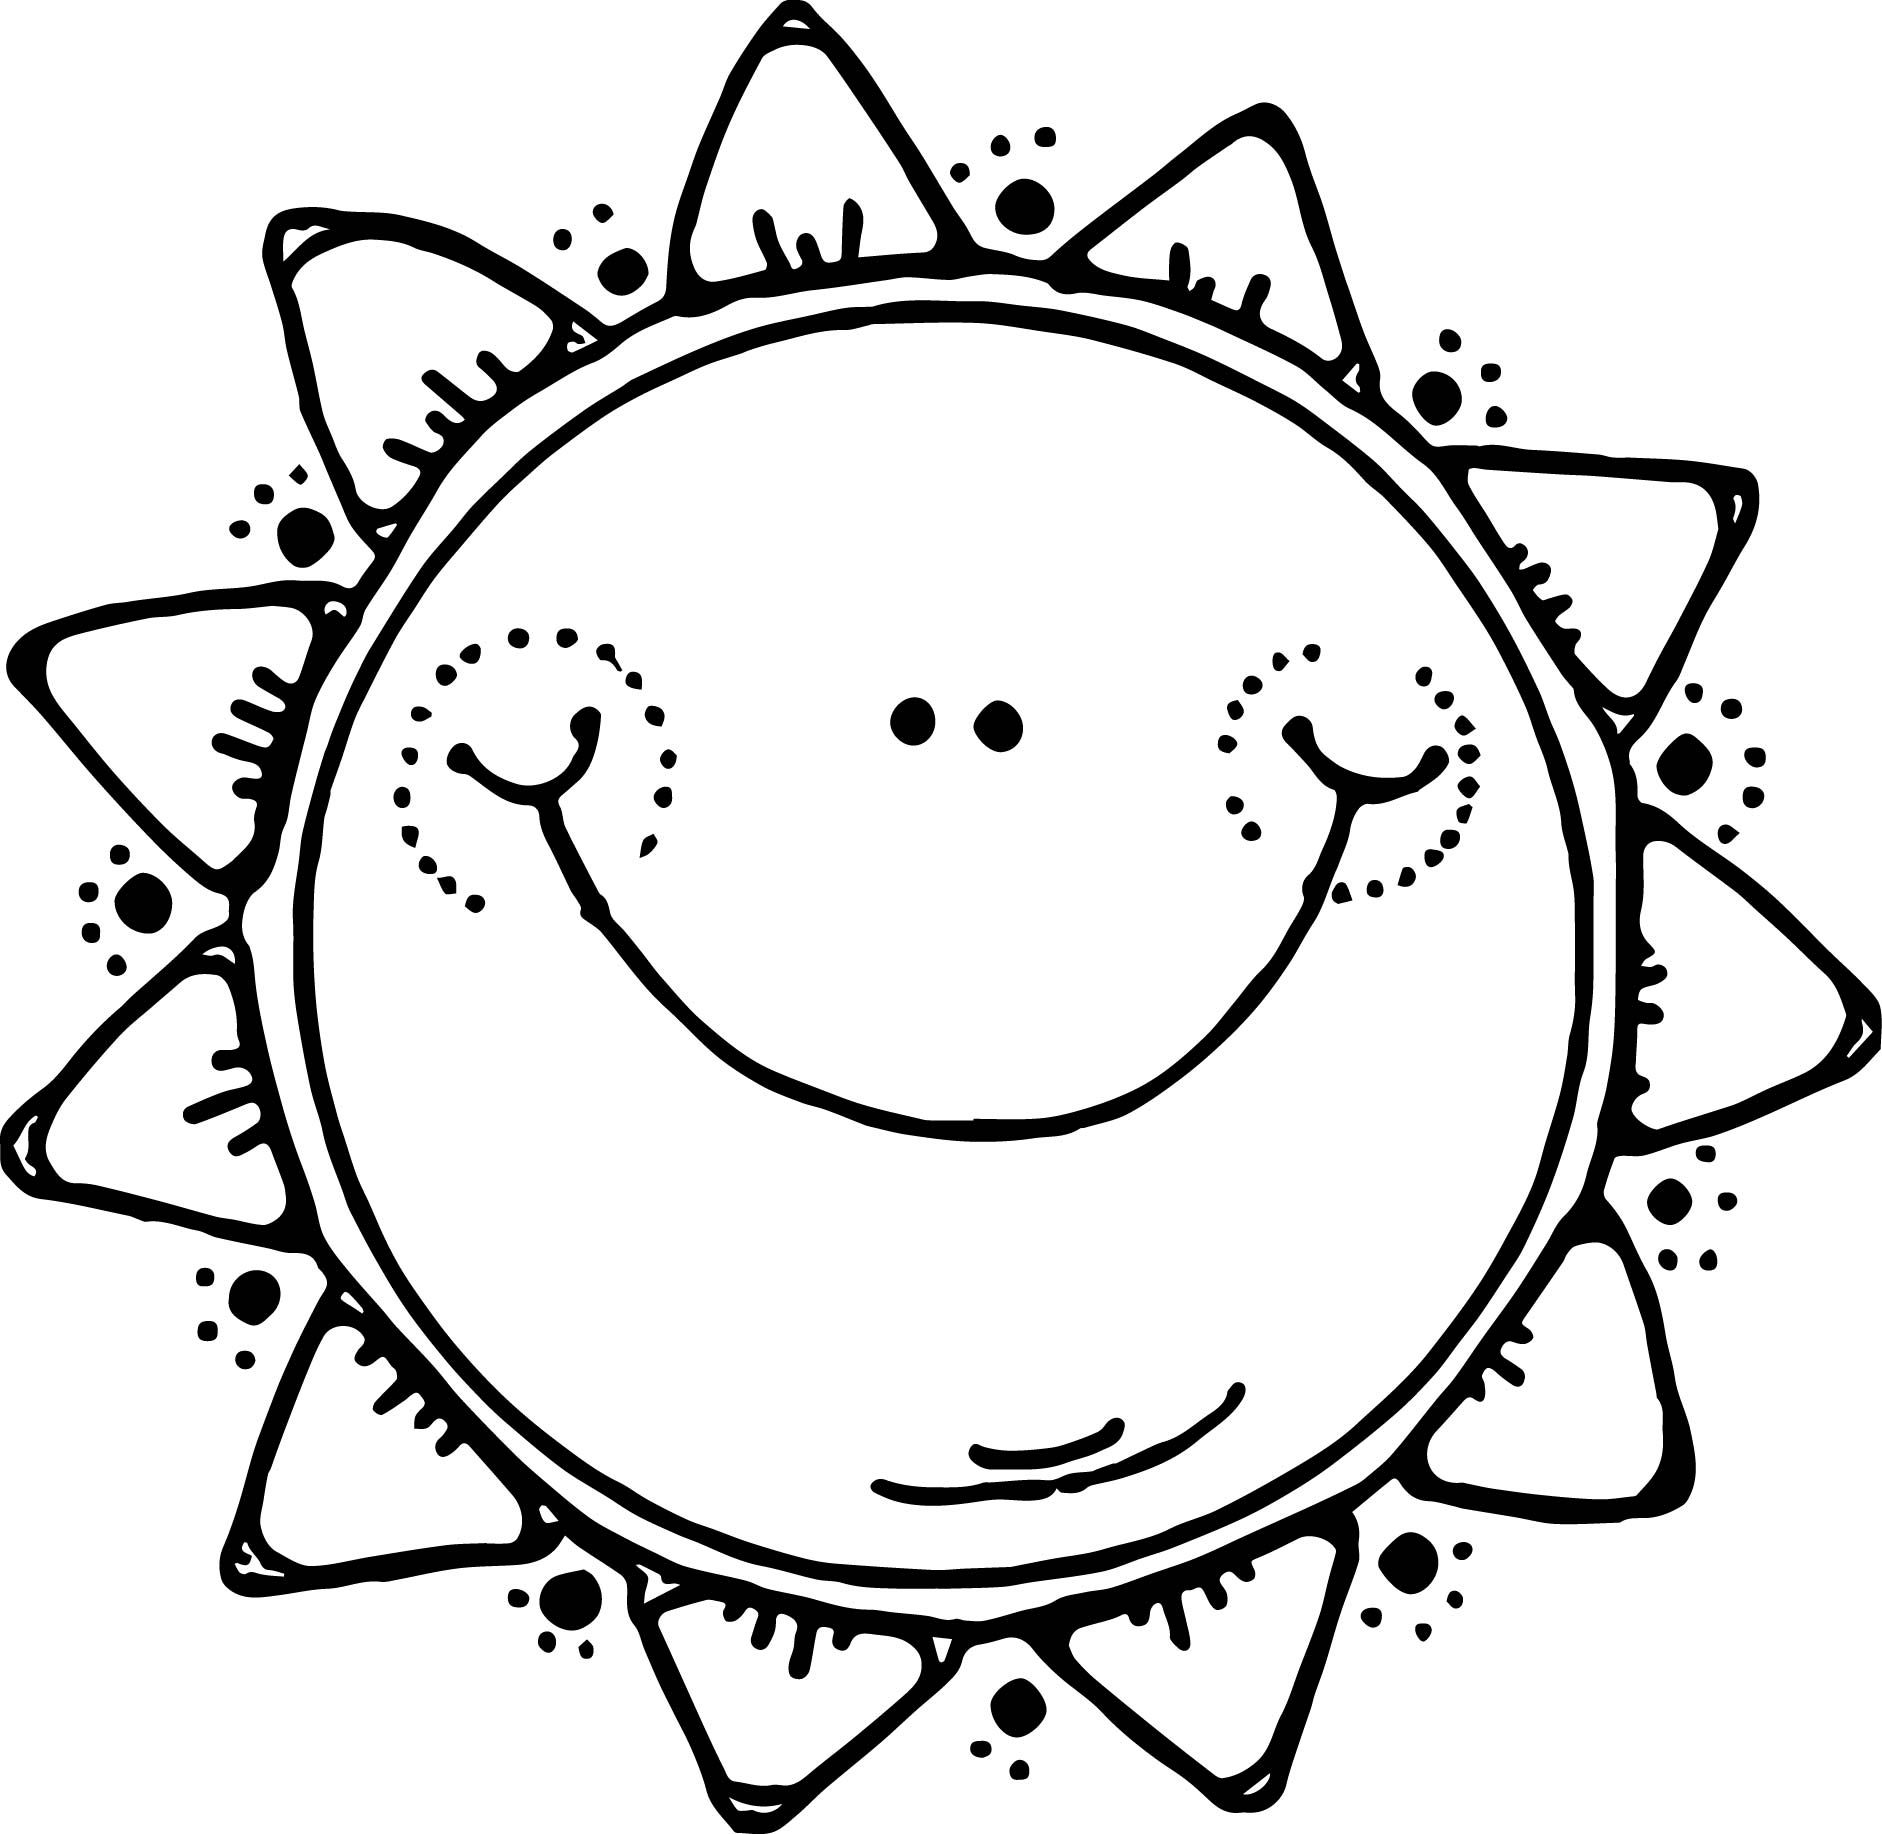 Cool Kids Sun Summer Coloring Page Summer Coloring Pages Sun Coloring Pages Coloring Pages